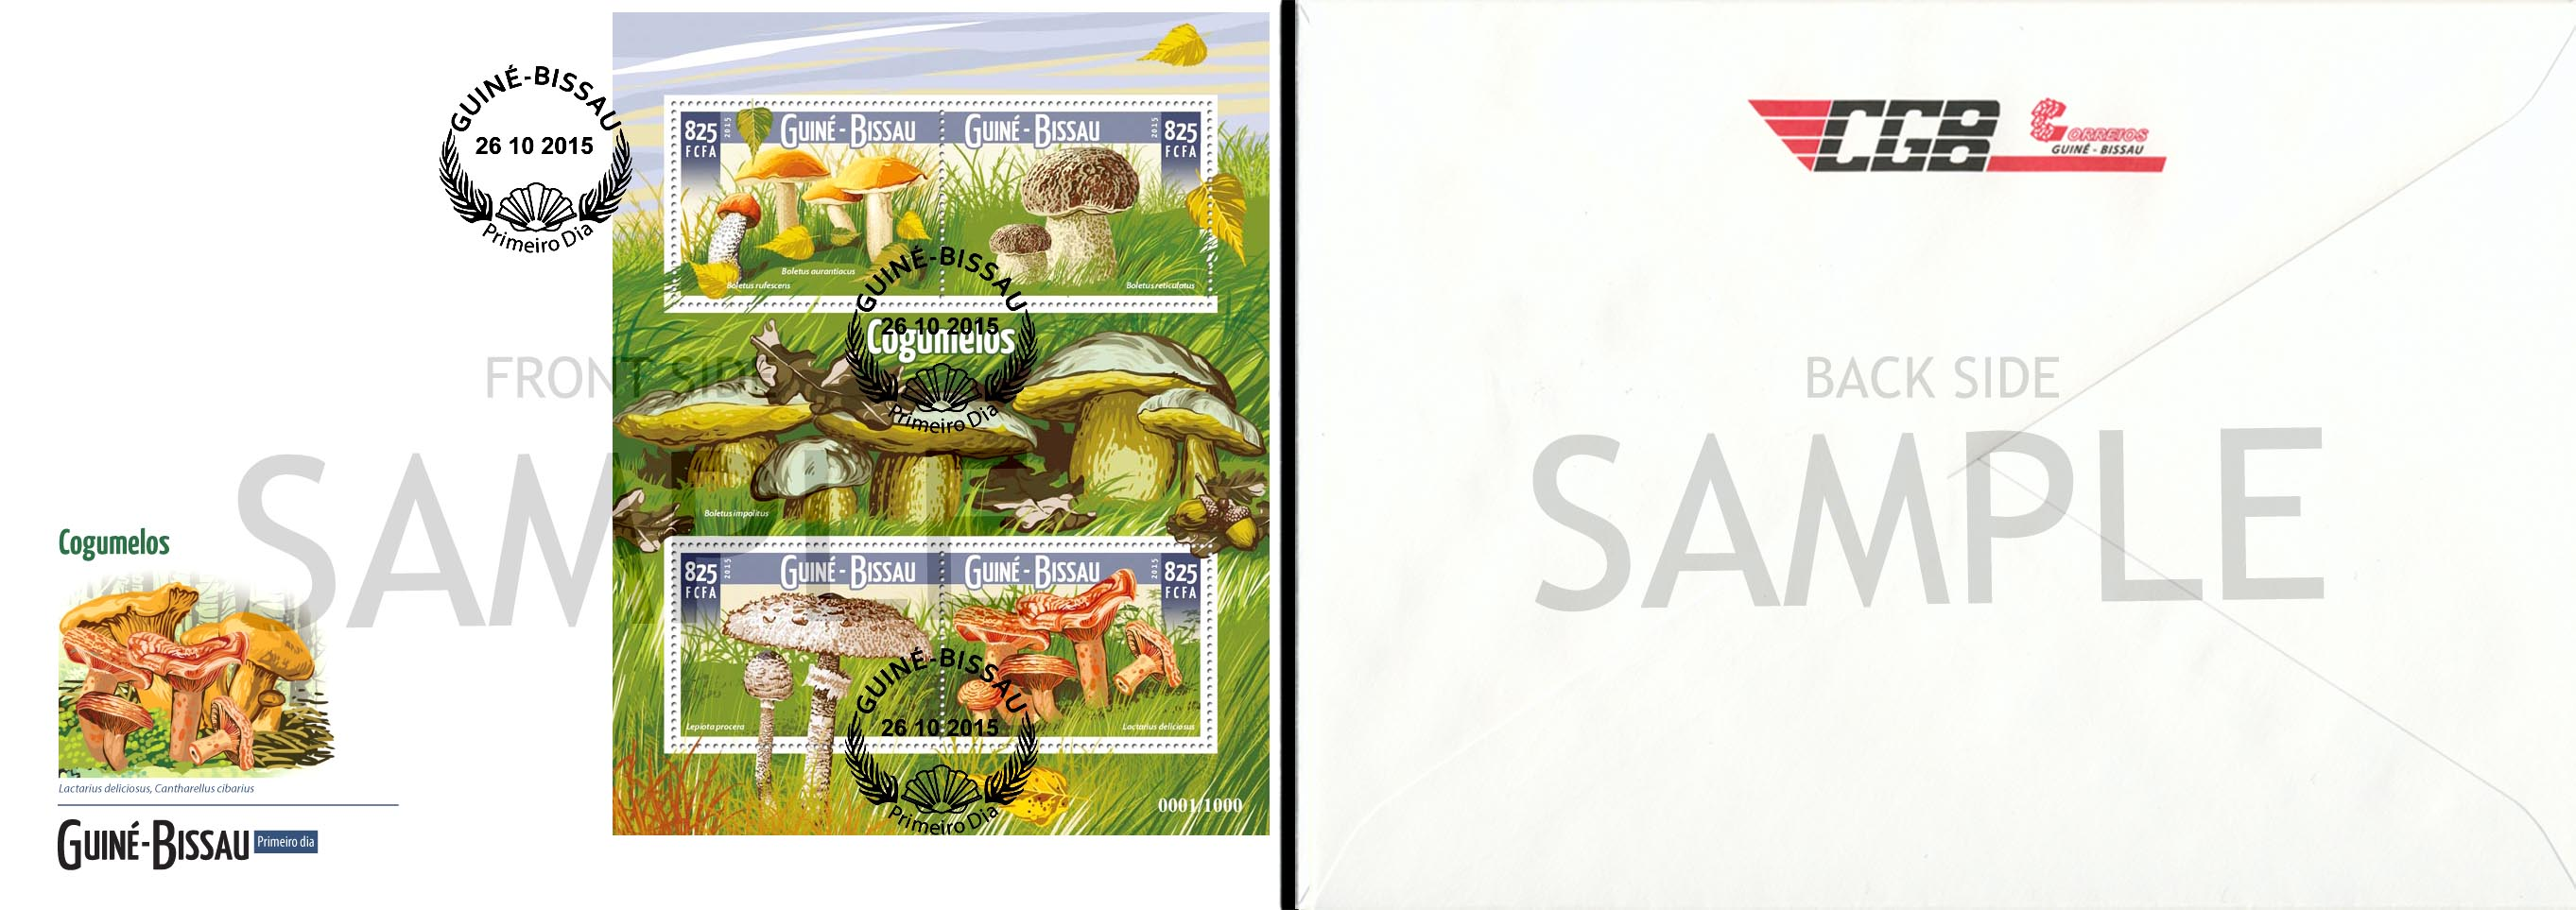 FDC Sample - Issue of Guinée-Bissau postage stamps